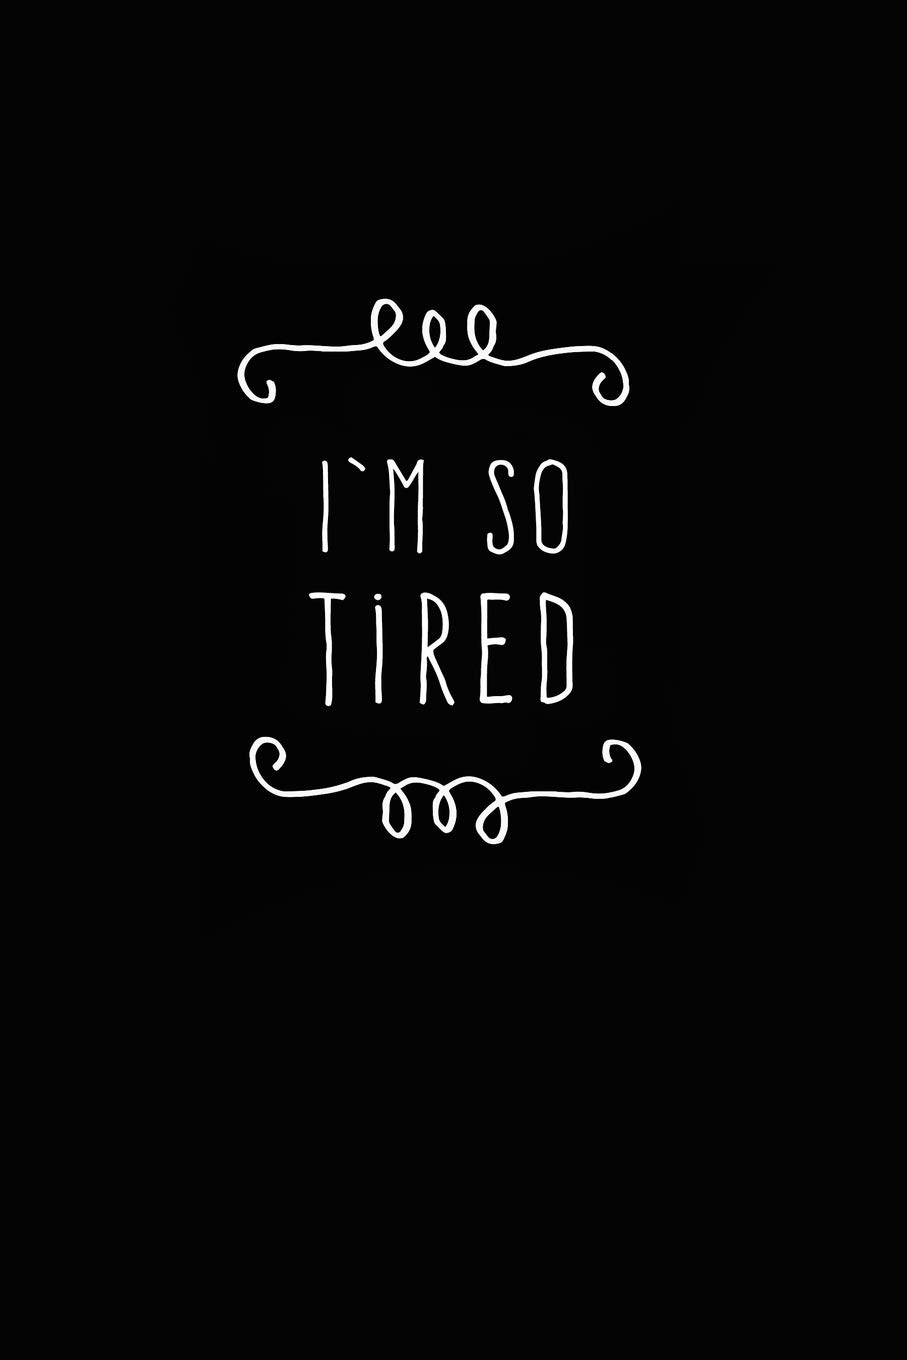 I'm so tired.